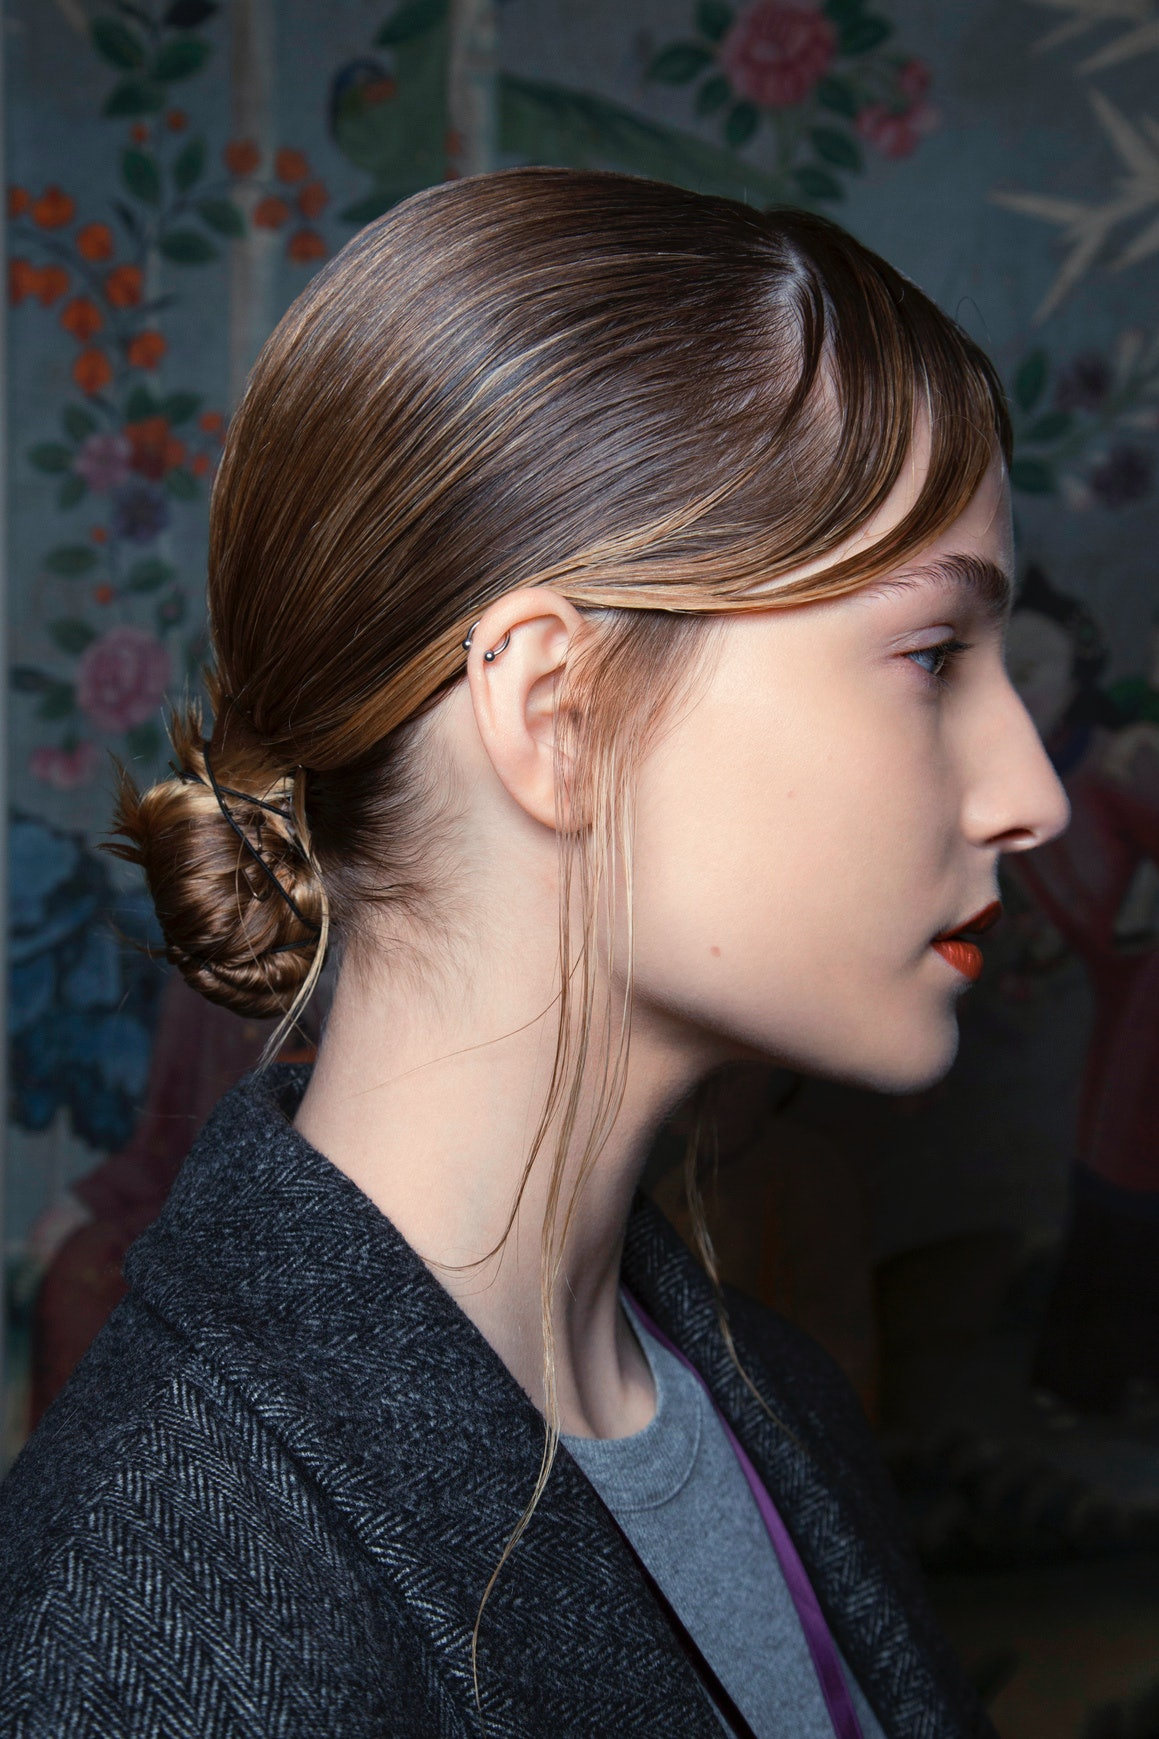 5 Easy Holiday Hairstyles For Medium Length Hair For When You Have